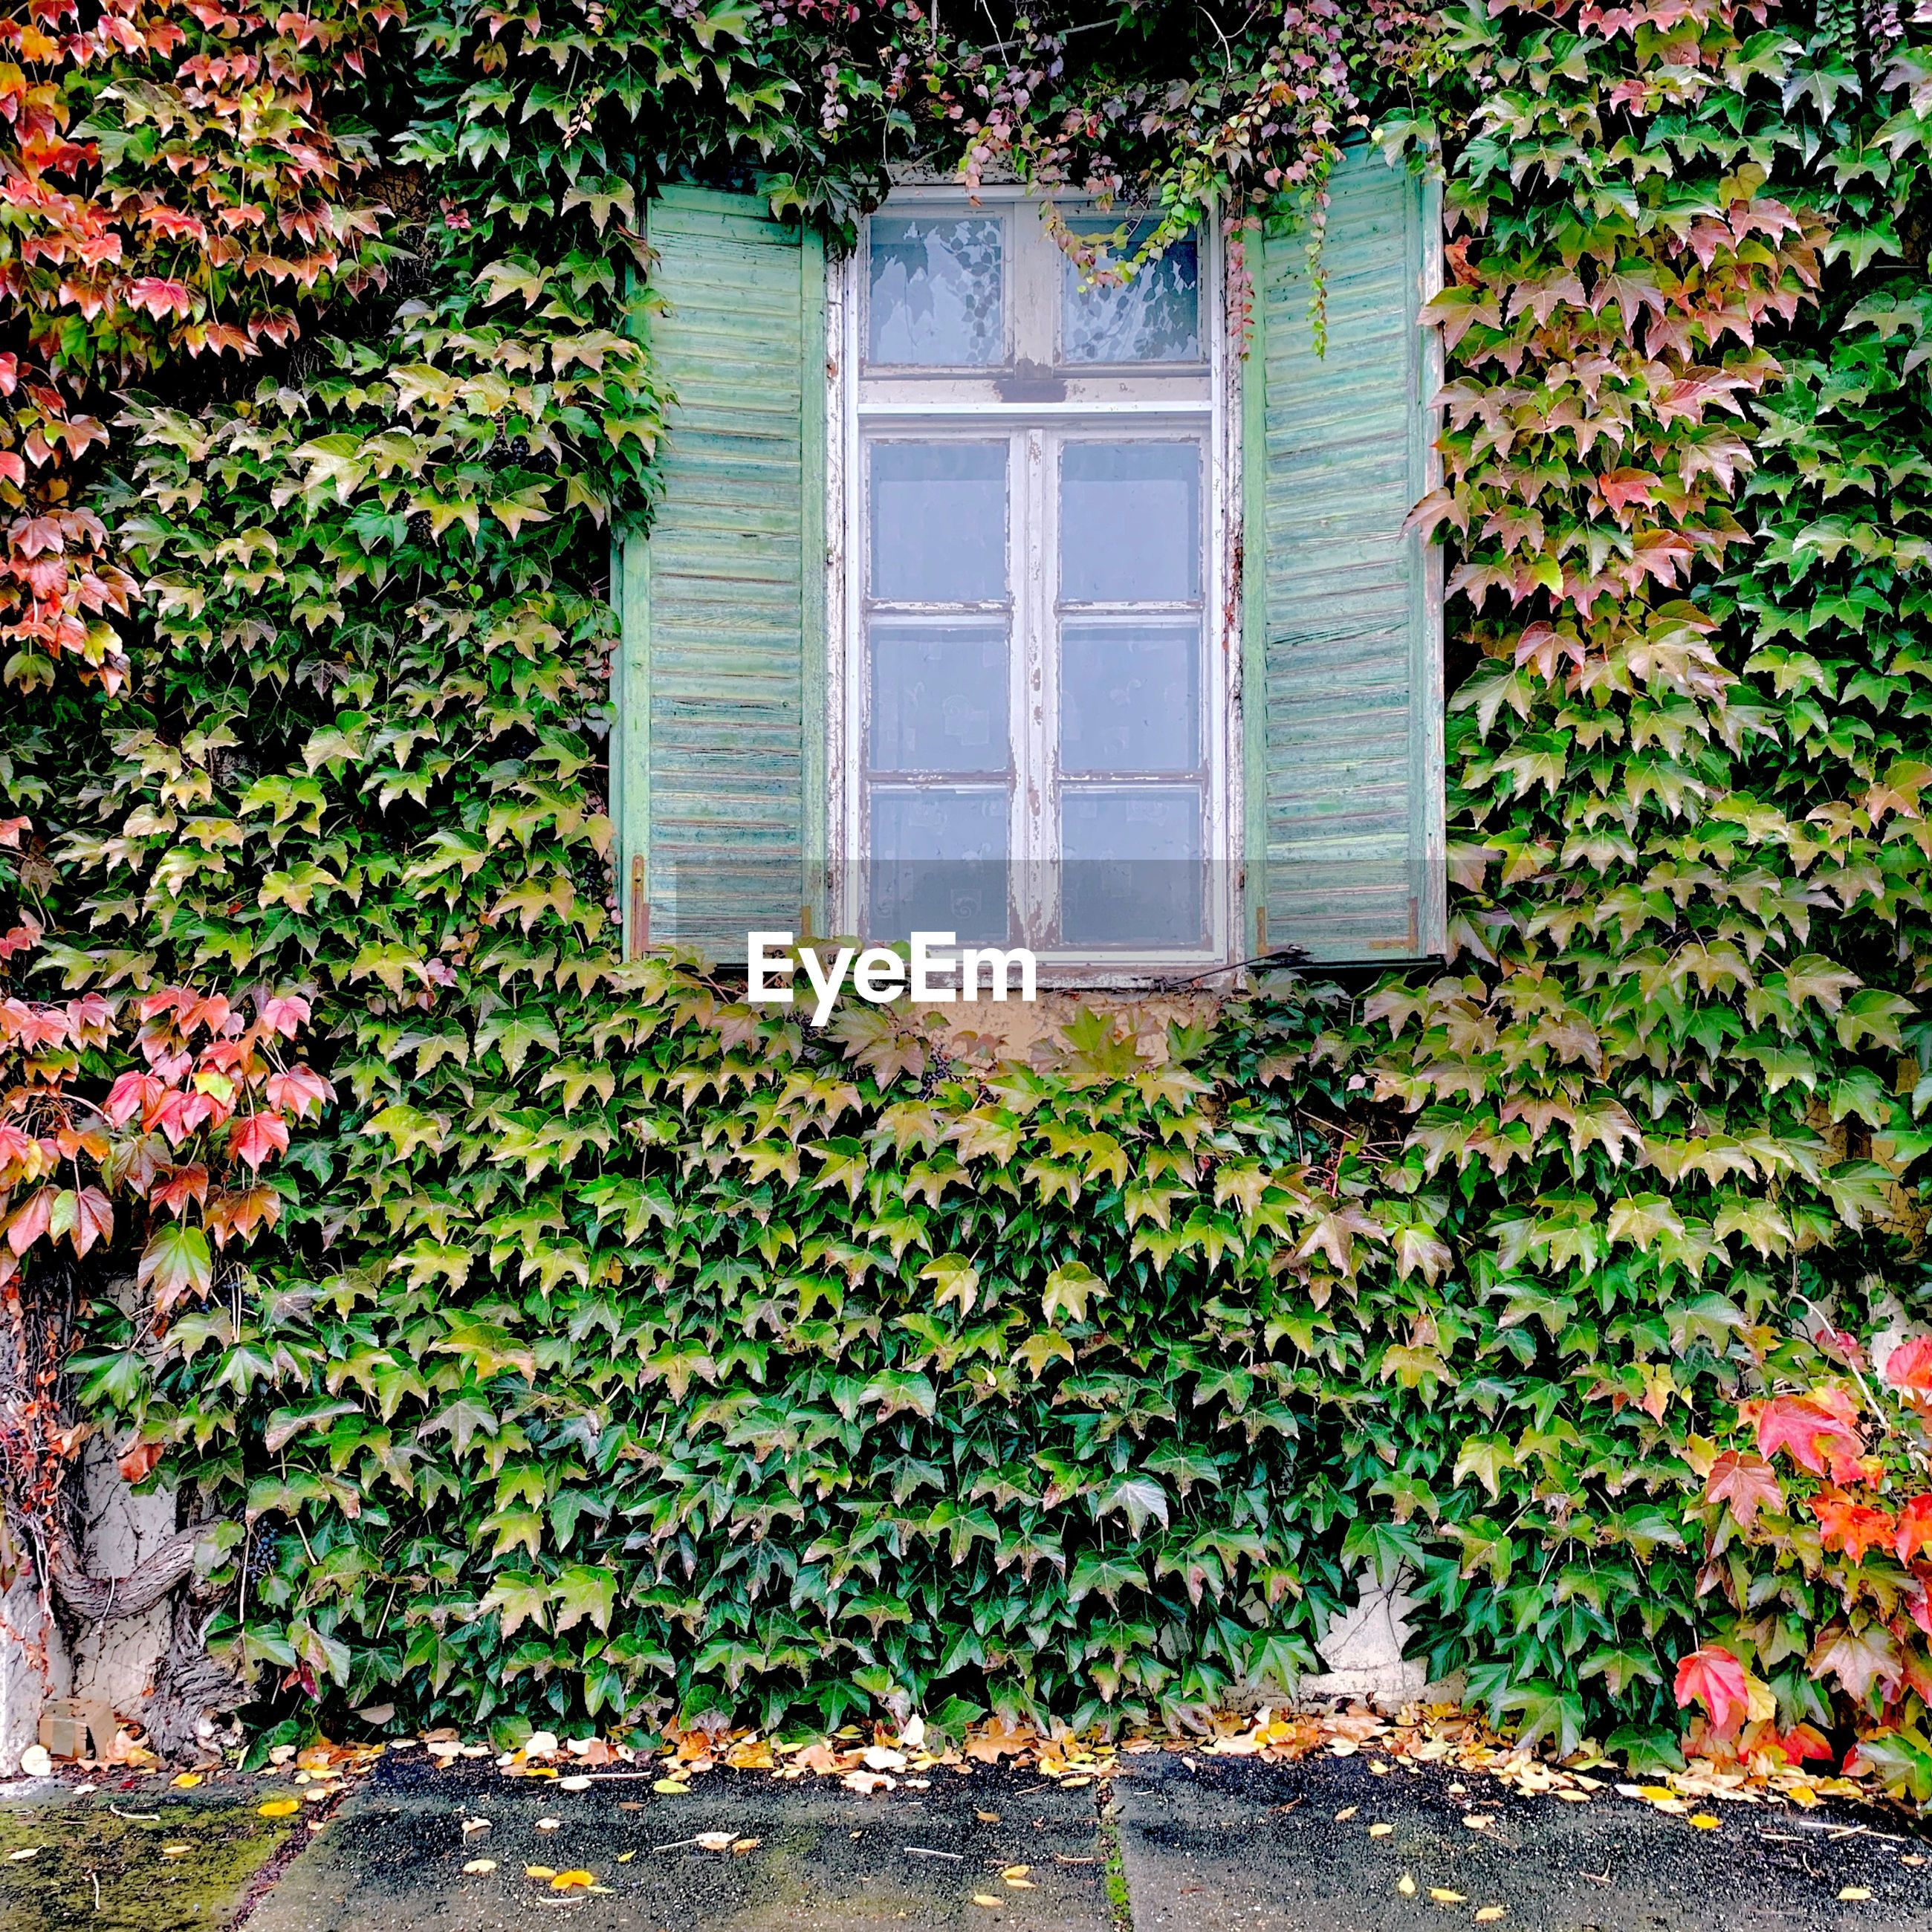 IVY GROWING ON BUILDING WALL